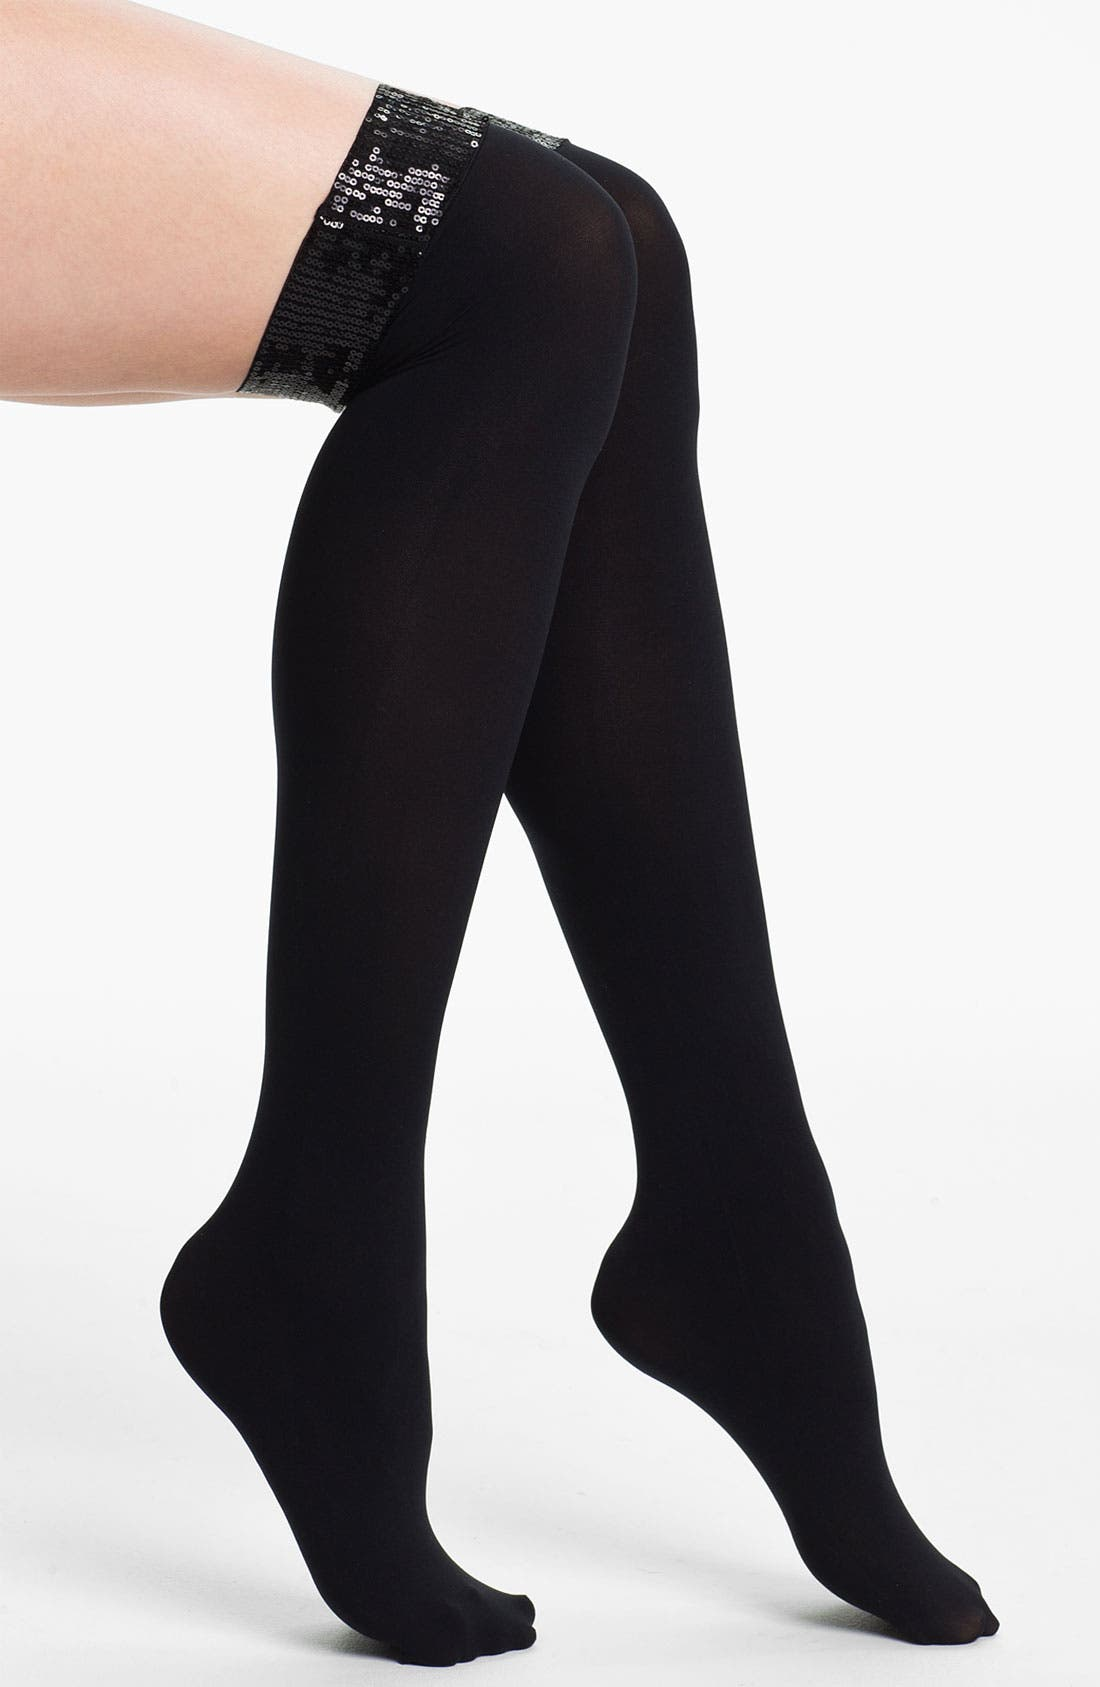 Alternate Image 1 Selected - DKNY Sequined Over the Knee Socks